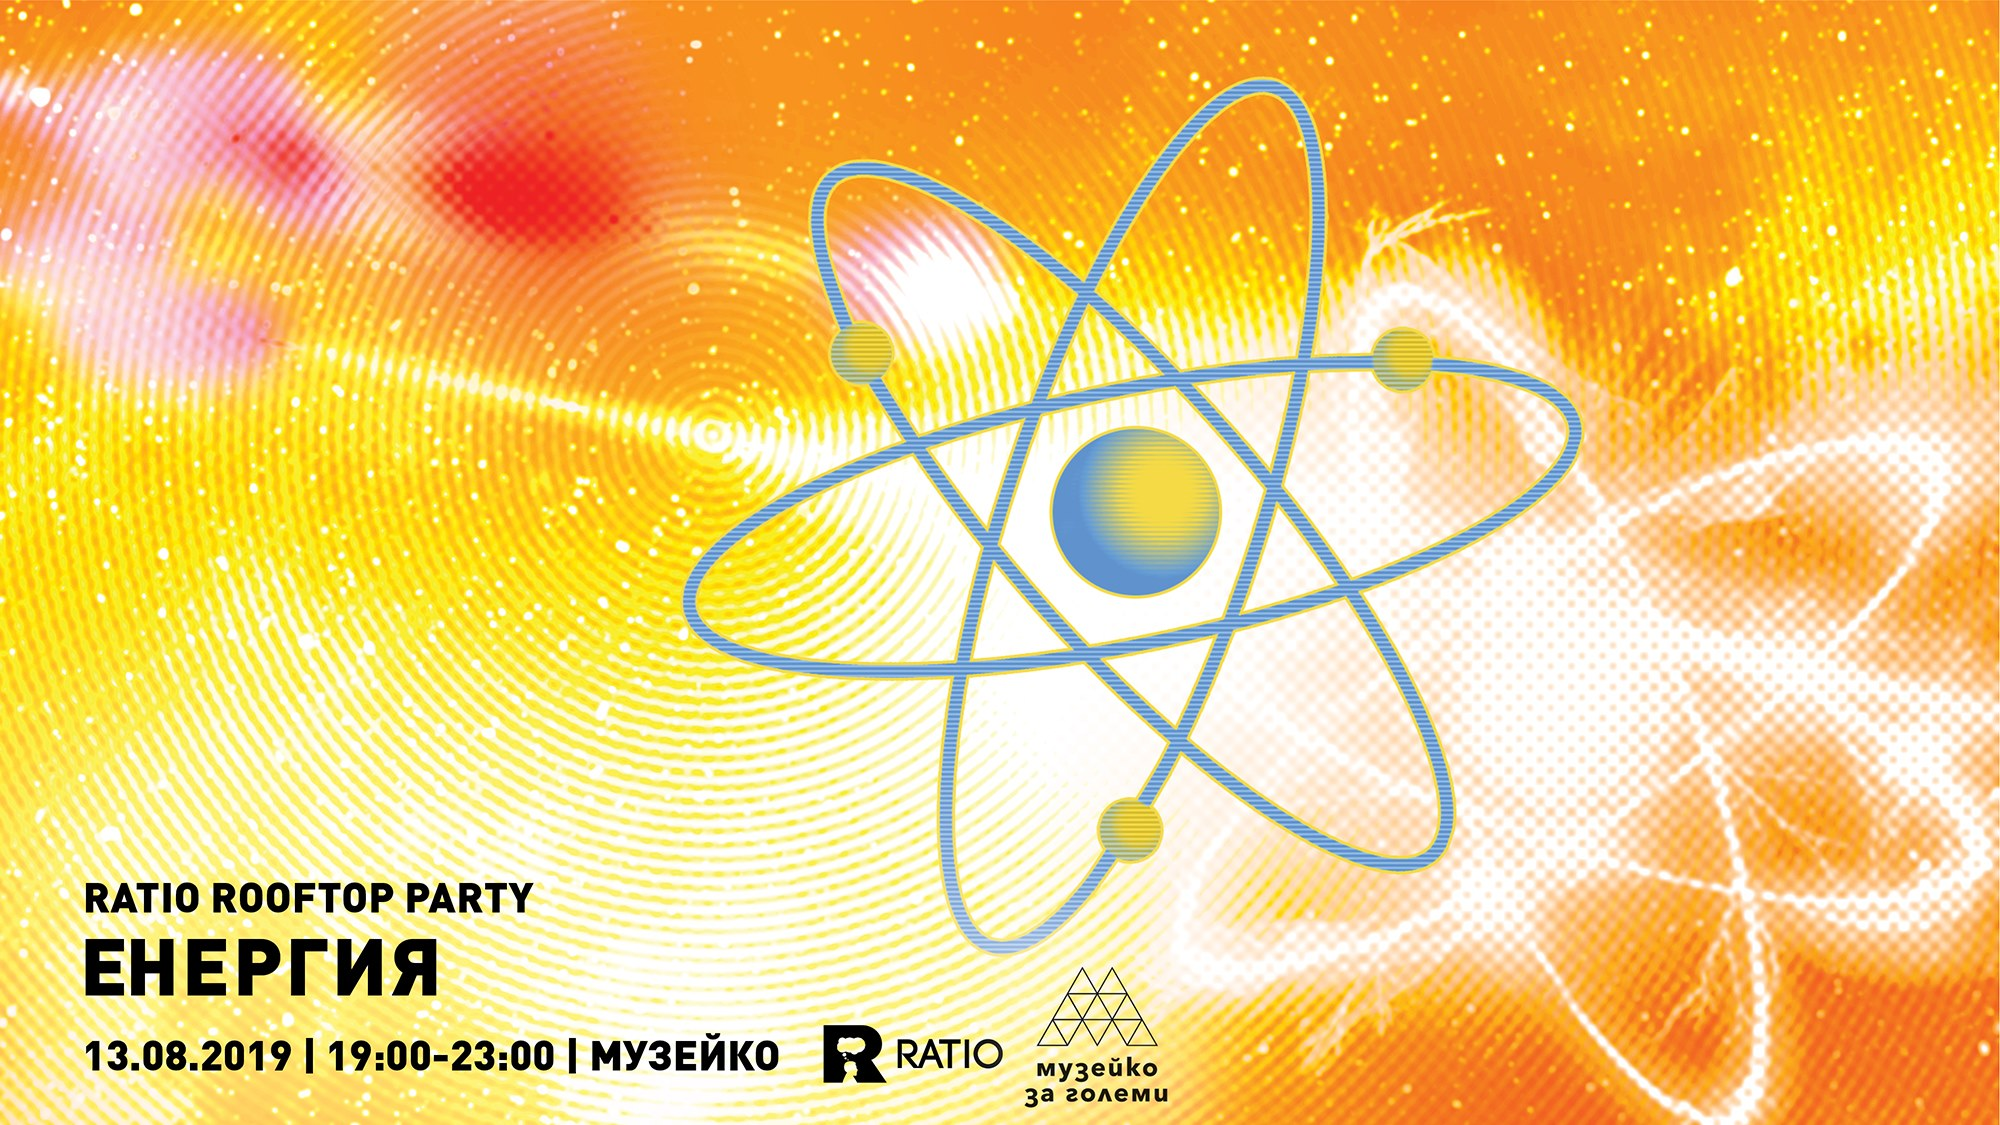 Енергия – Ratio Rooftop Party